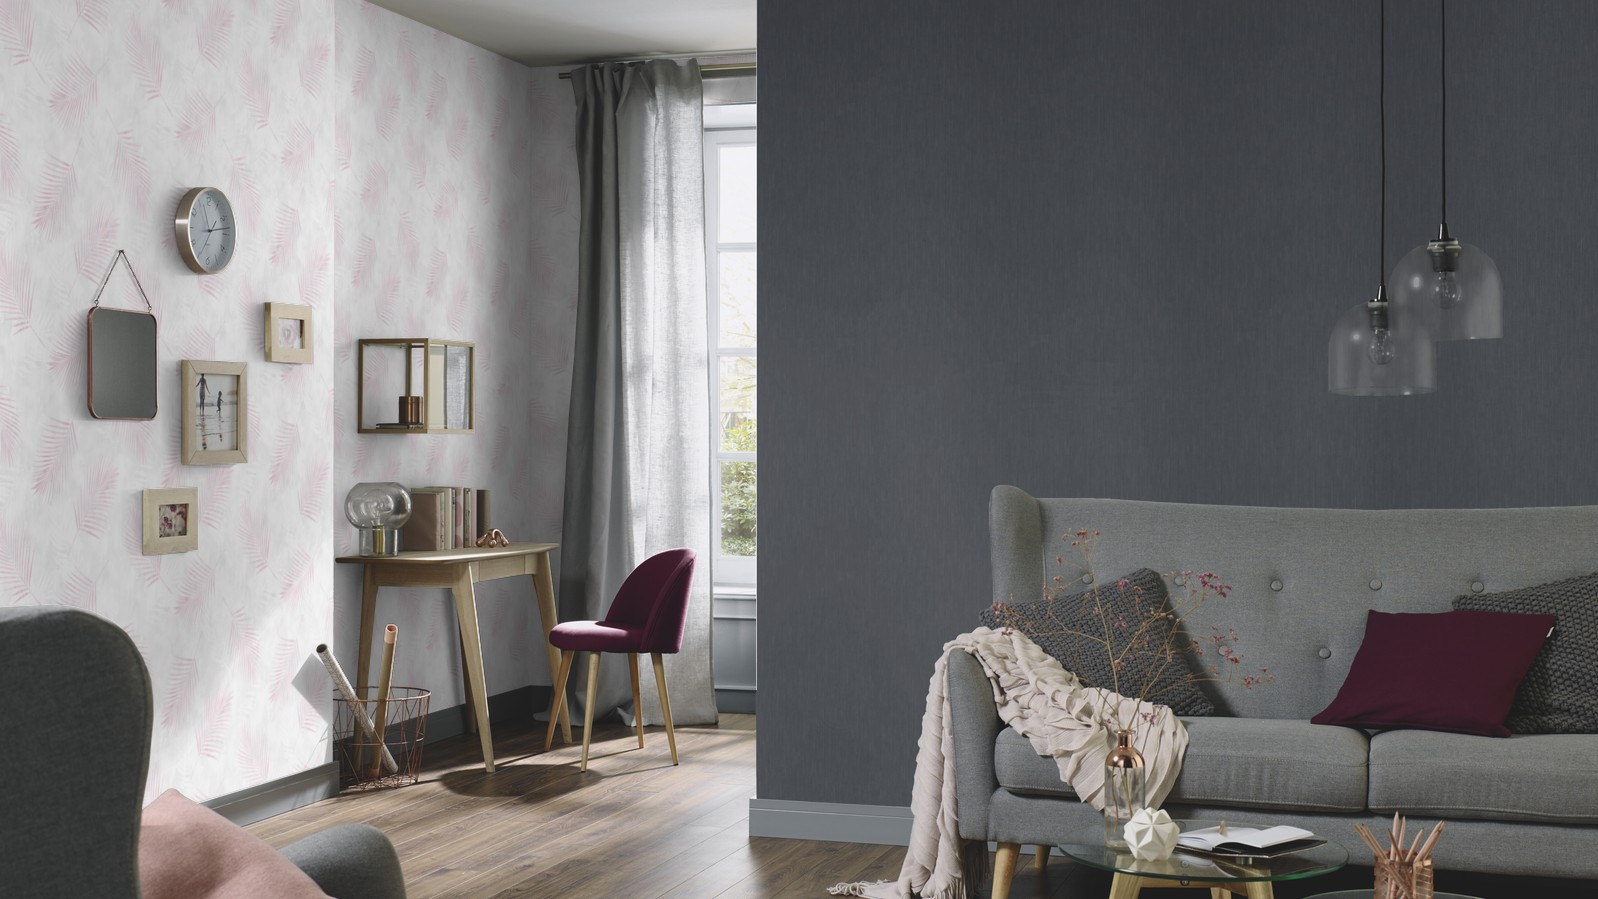 Картинка обоев Fashion for Walls  Erismann на стену